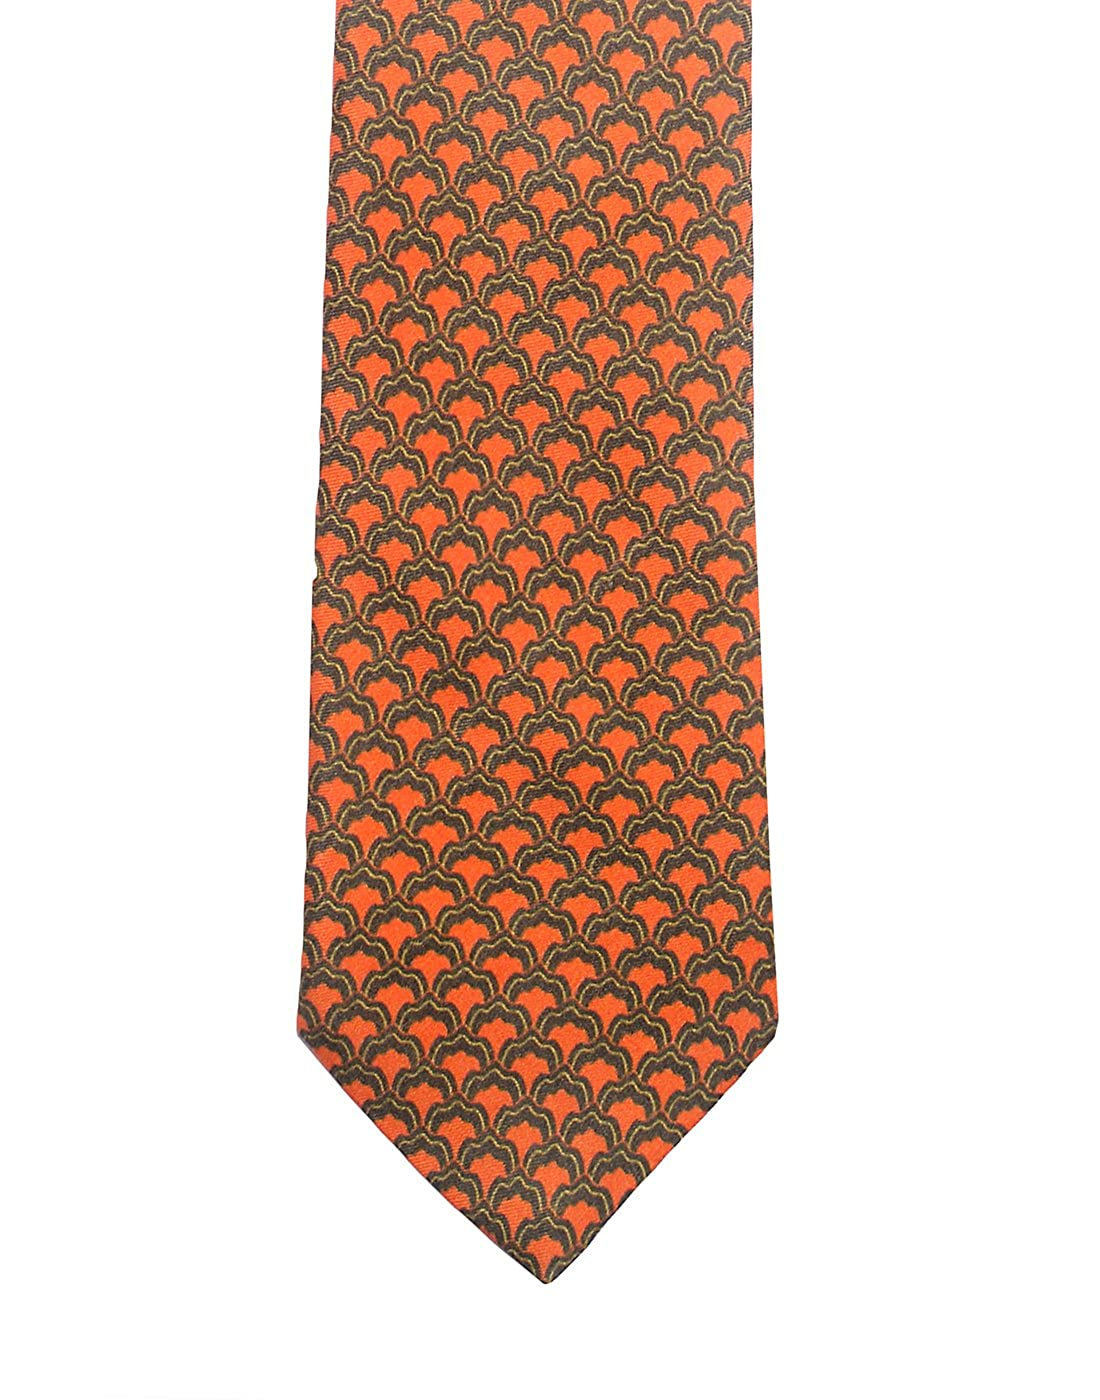 Chokore Grey /& Red Silk Tie Indian at Heart line